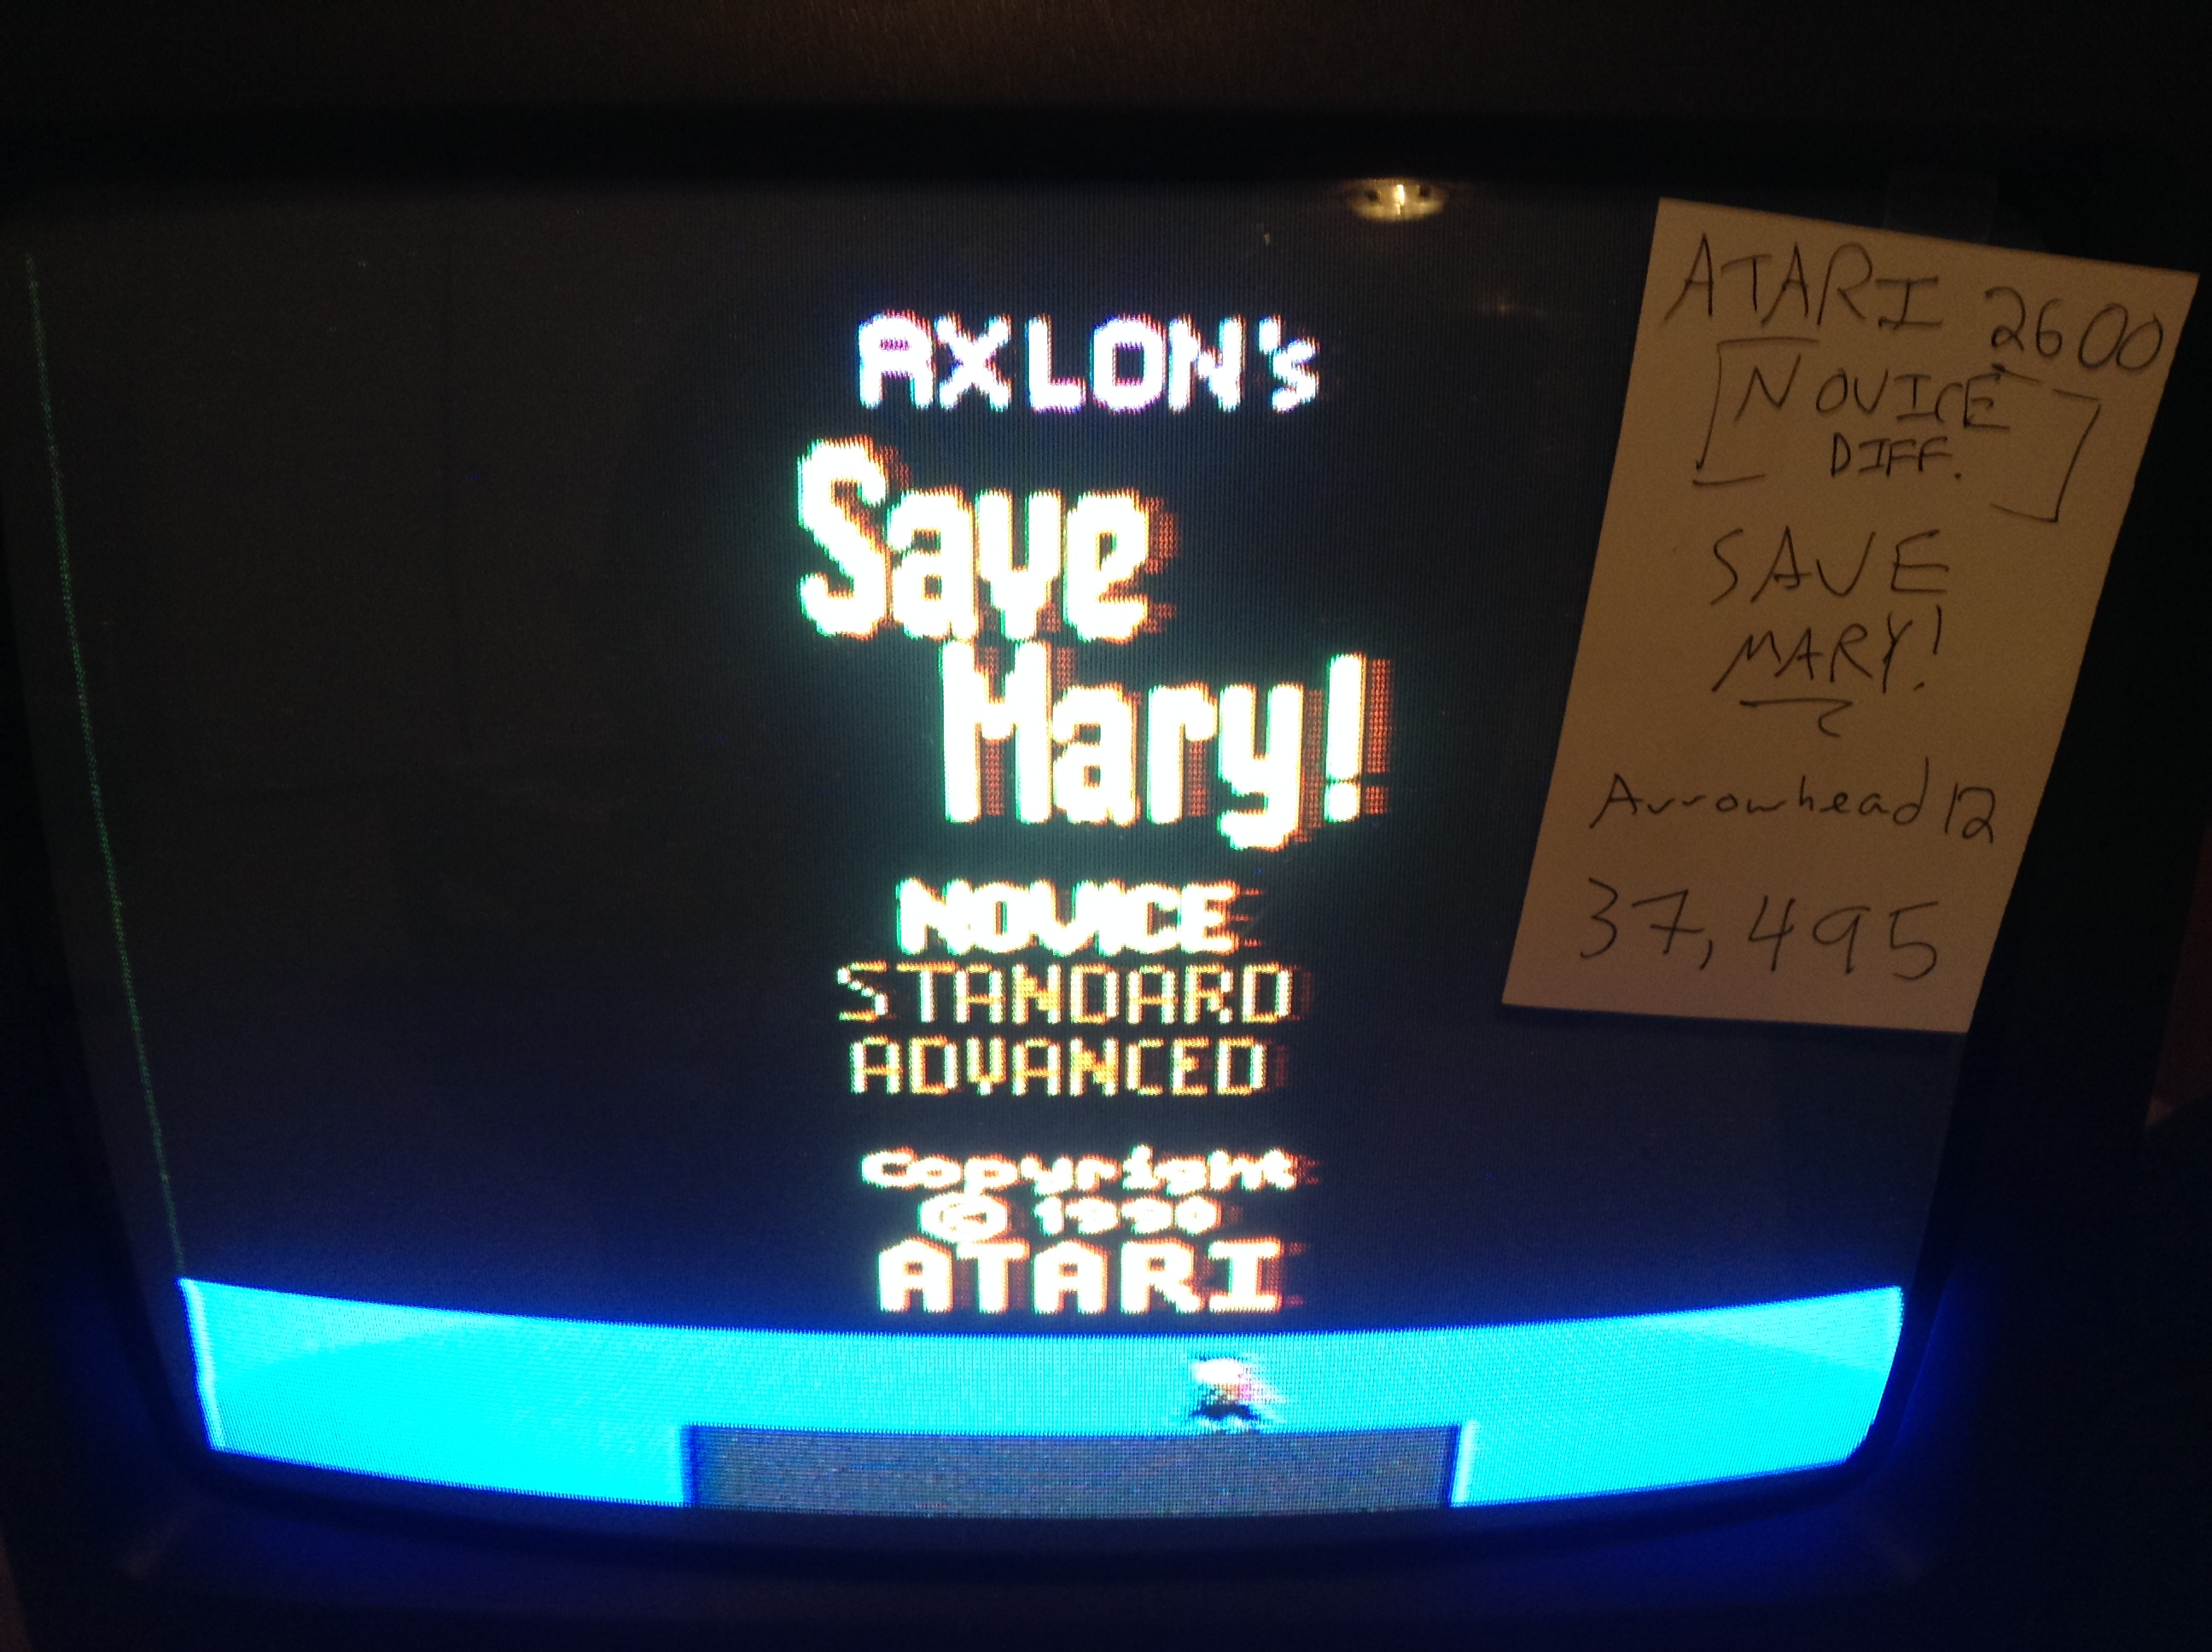 Save Mary [Novice] 37,495 points